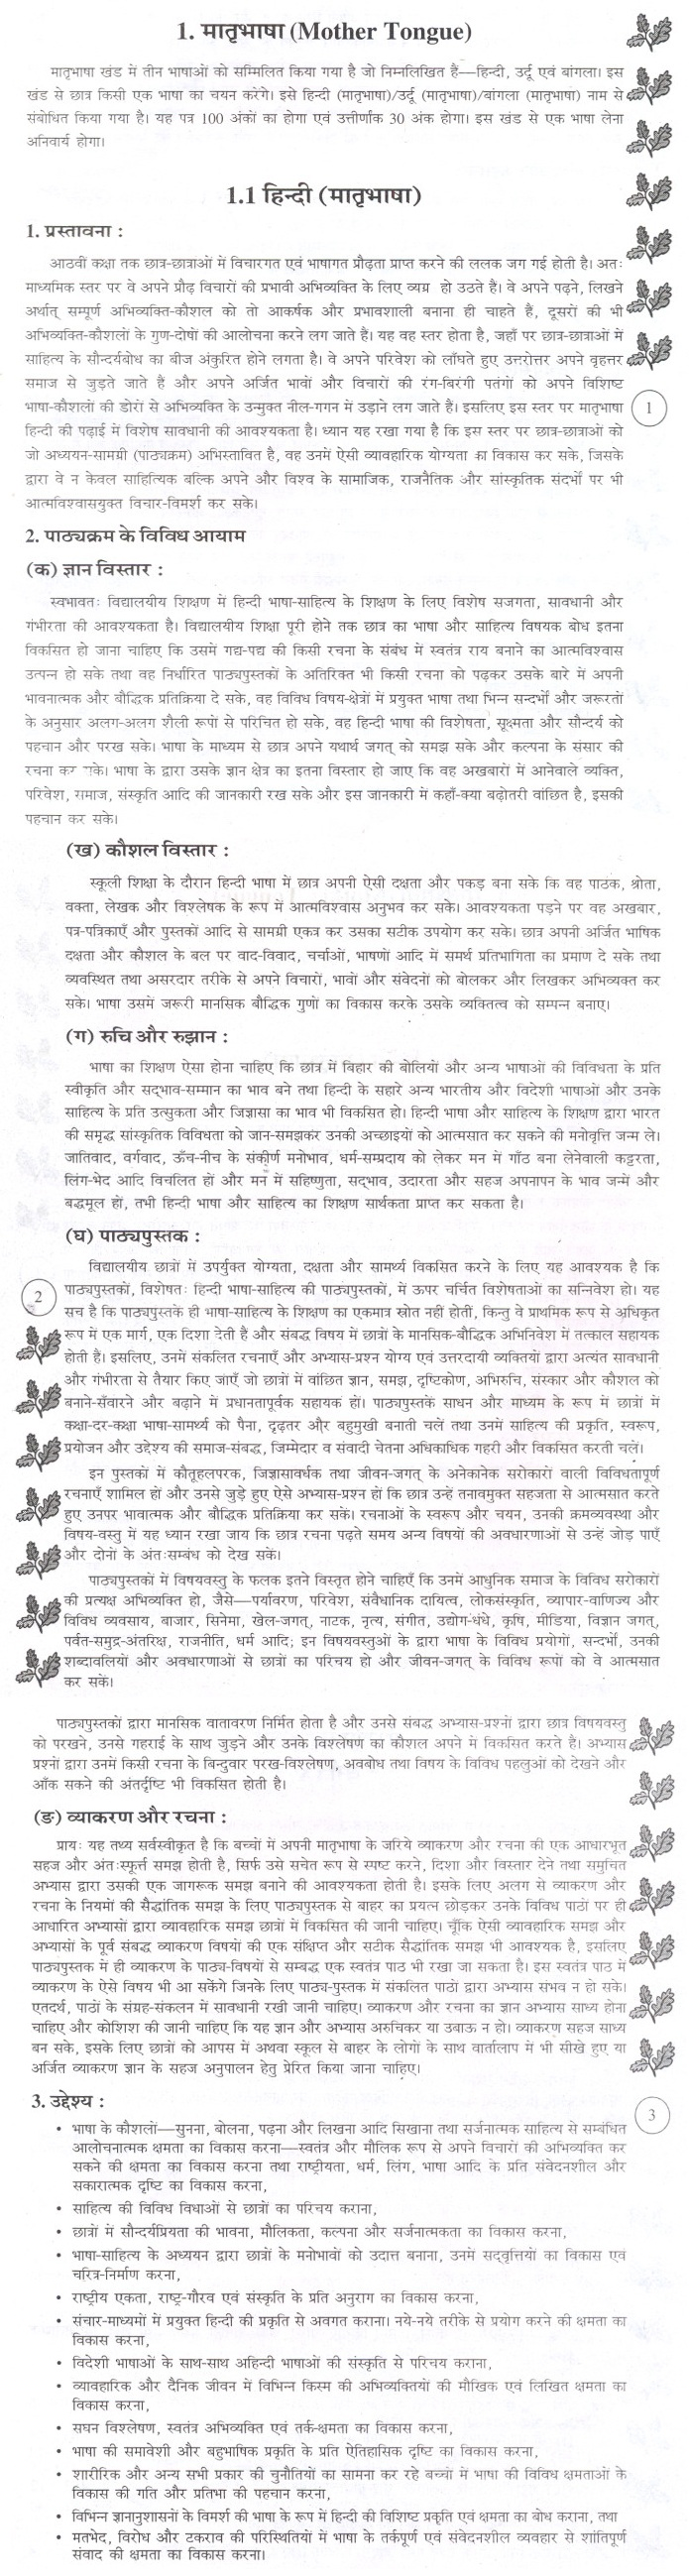 Bihar Board Secondary Syllabus - Mother Tongue